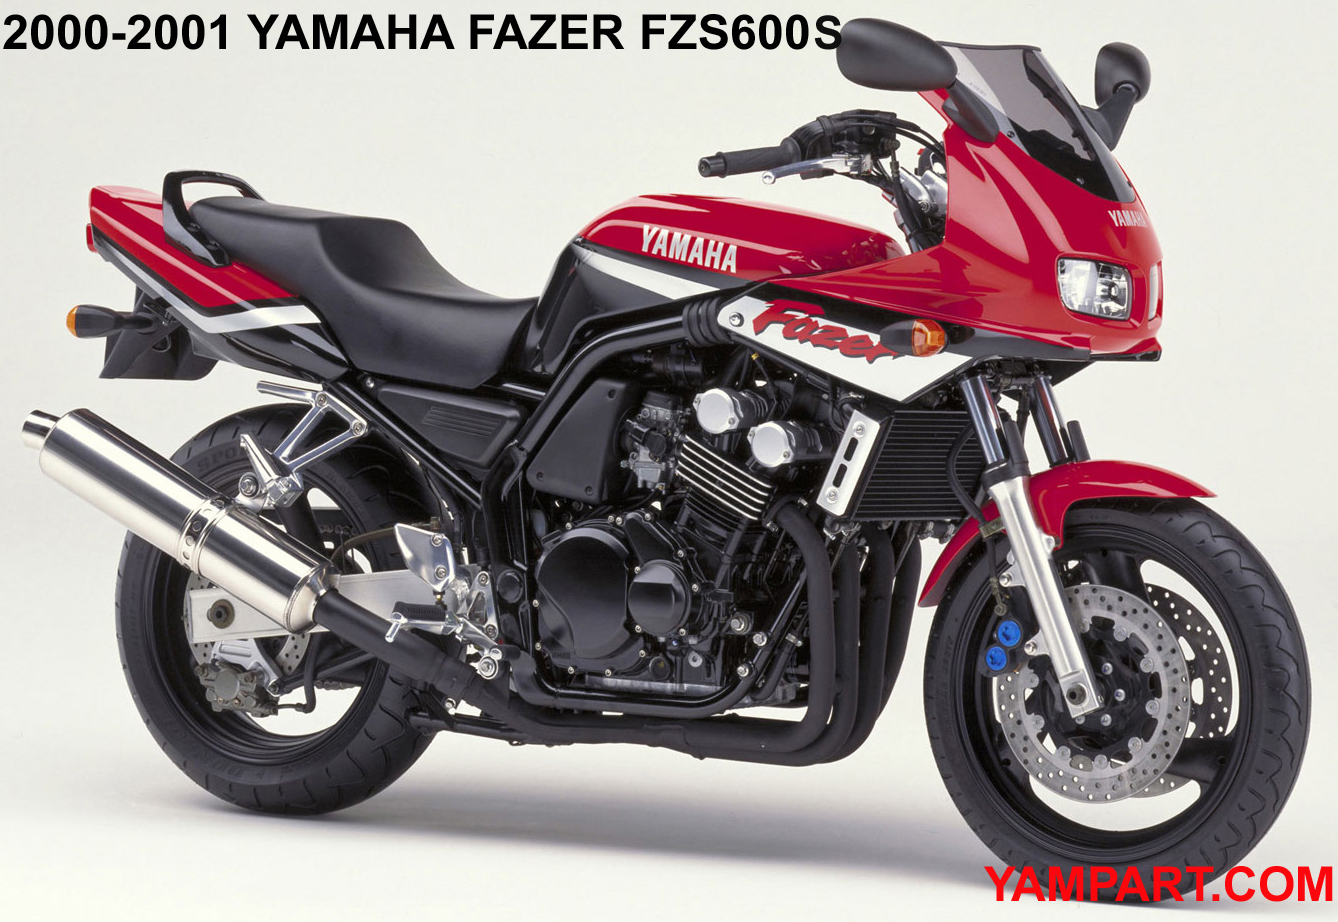 2000 2001 YAMAHA FAZER FZS600S USED PARTS YAMPART.COM BUYERS GUIDE - Copy